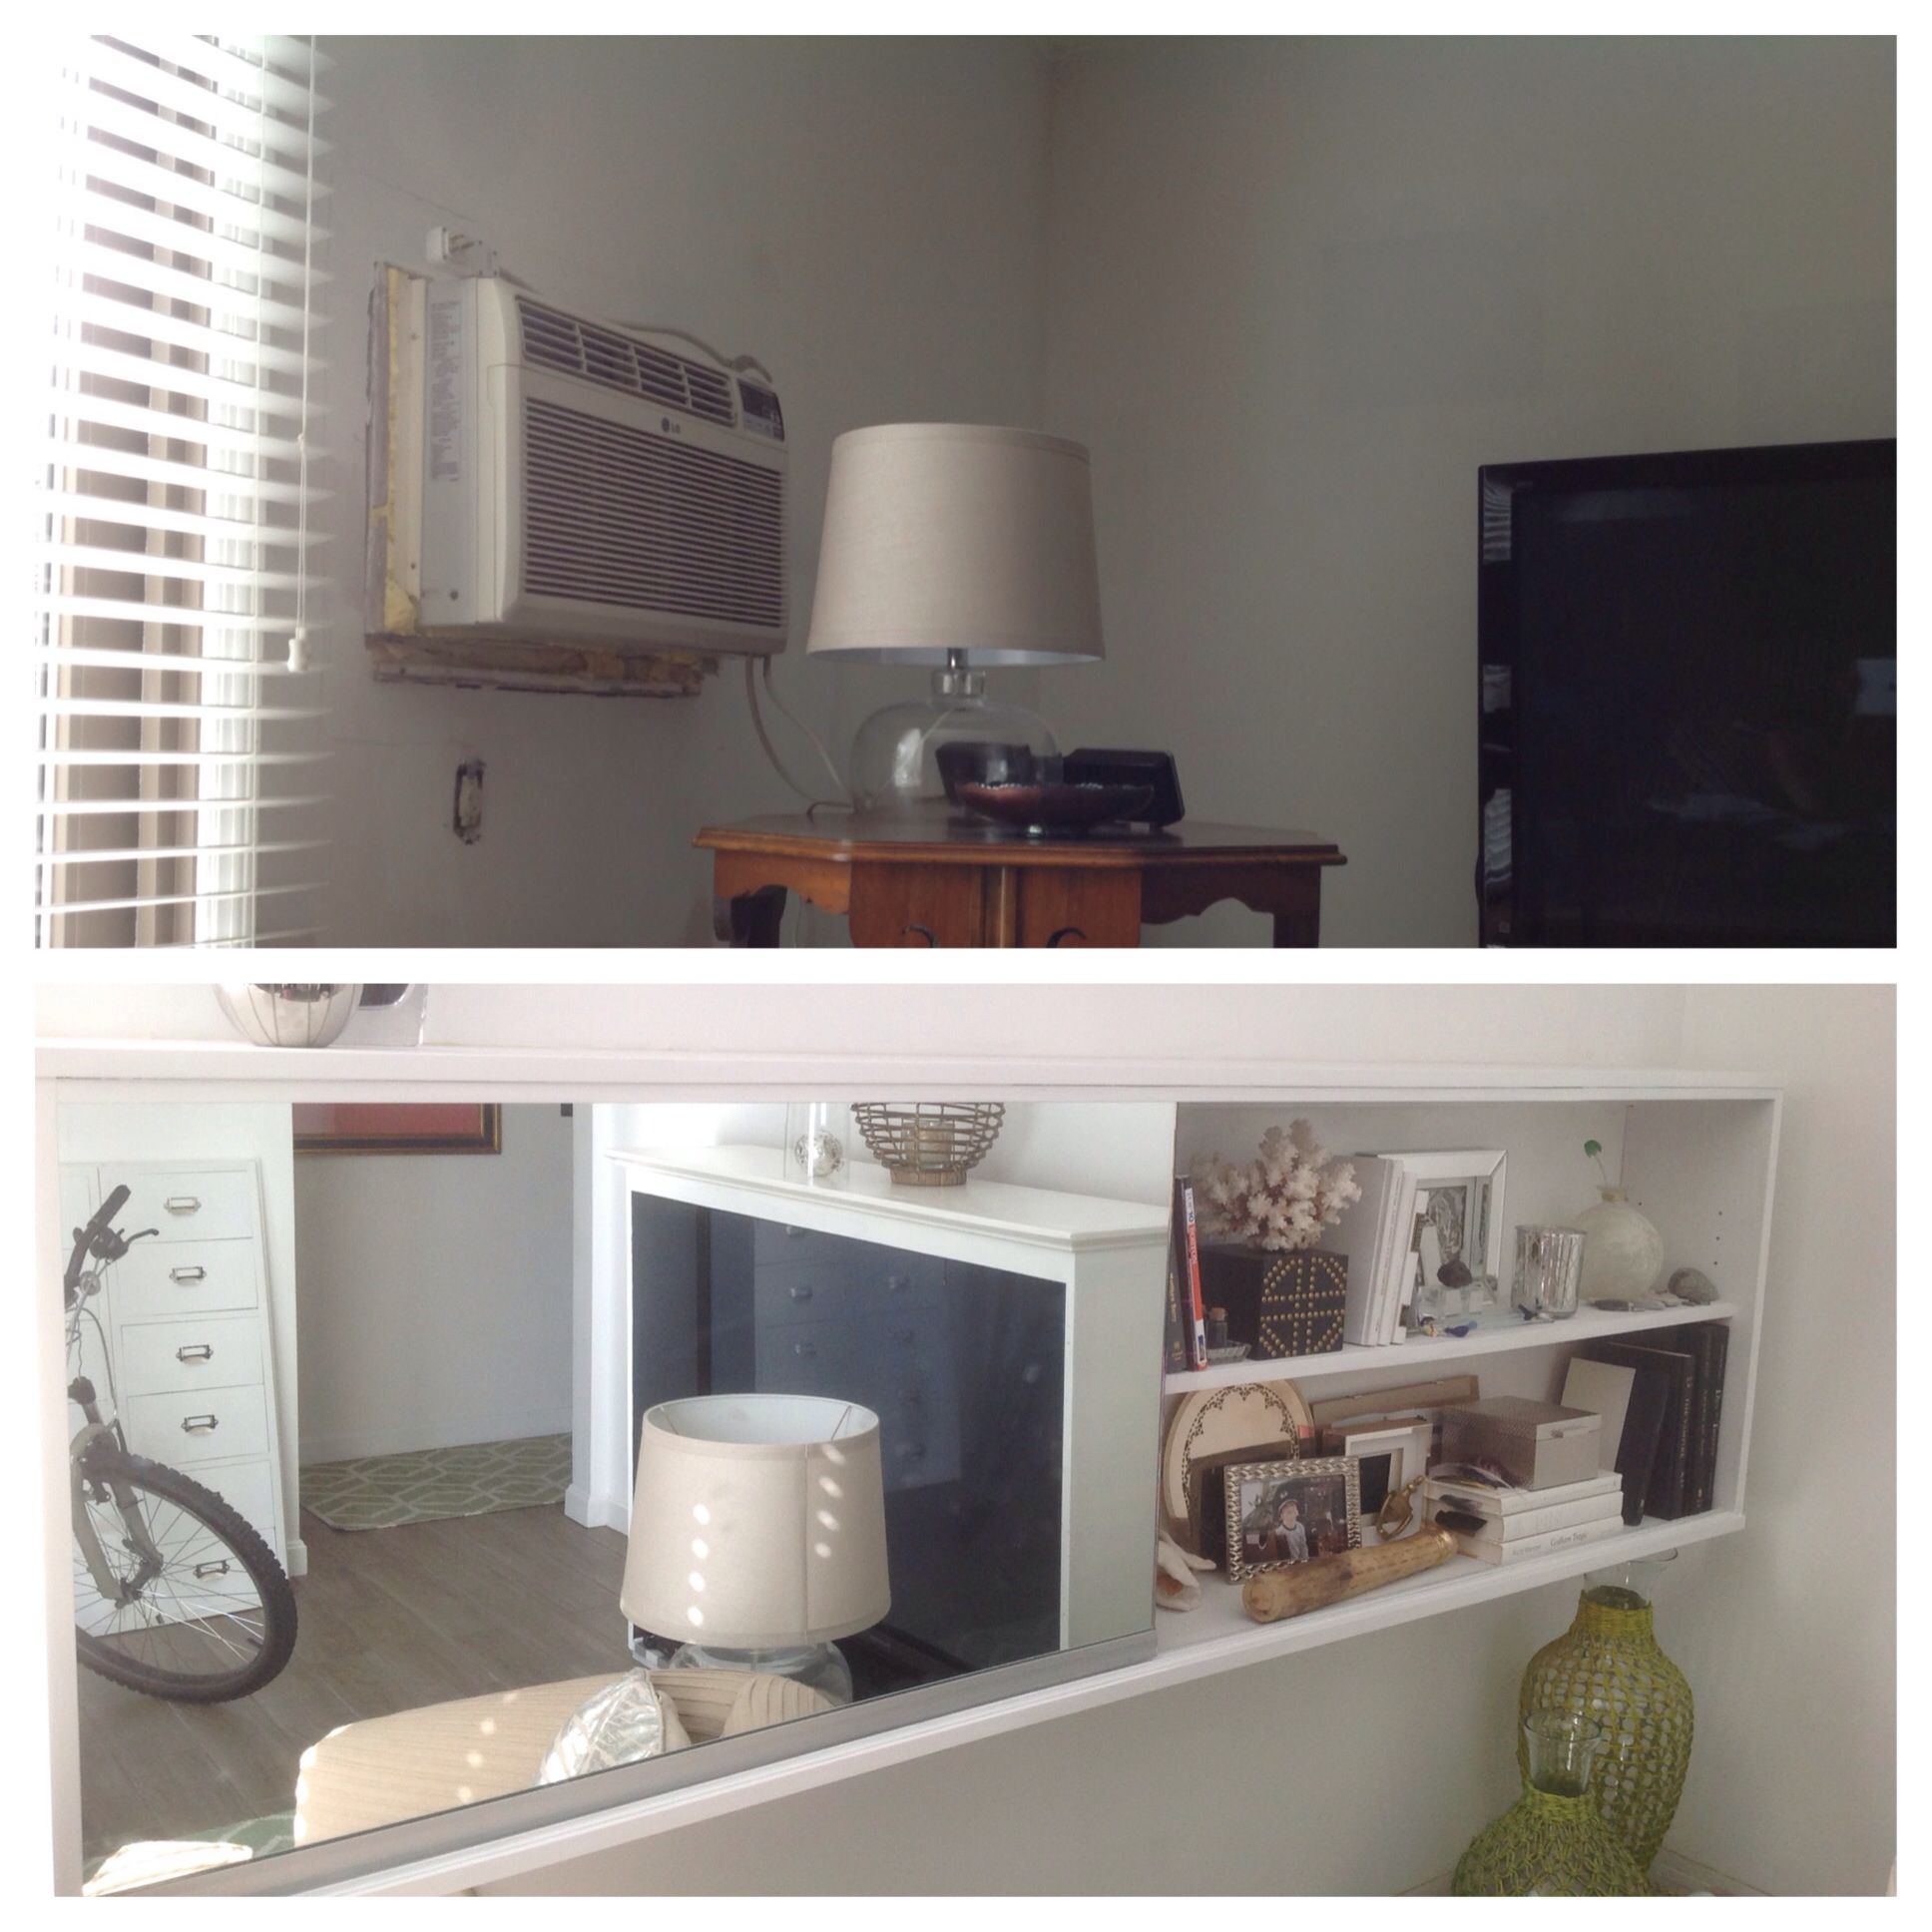 diy wall unit air conditioner cover | want to recreate | Pinterest ...